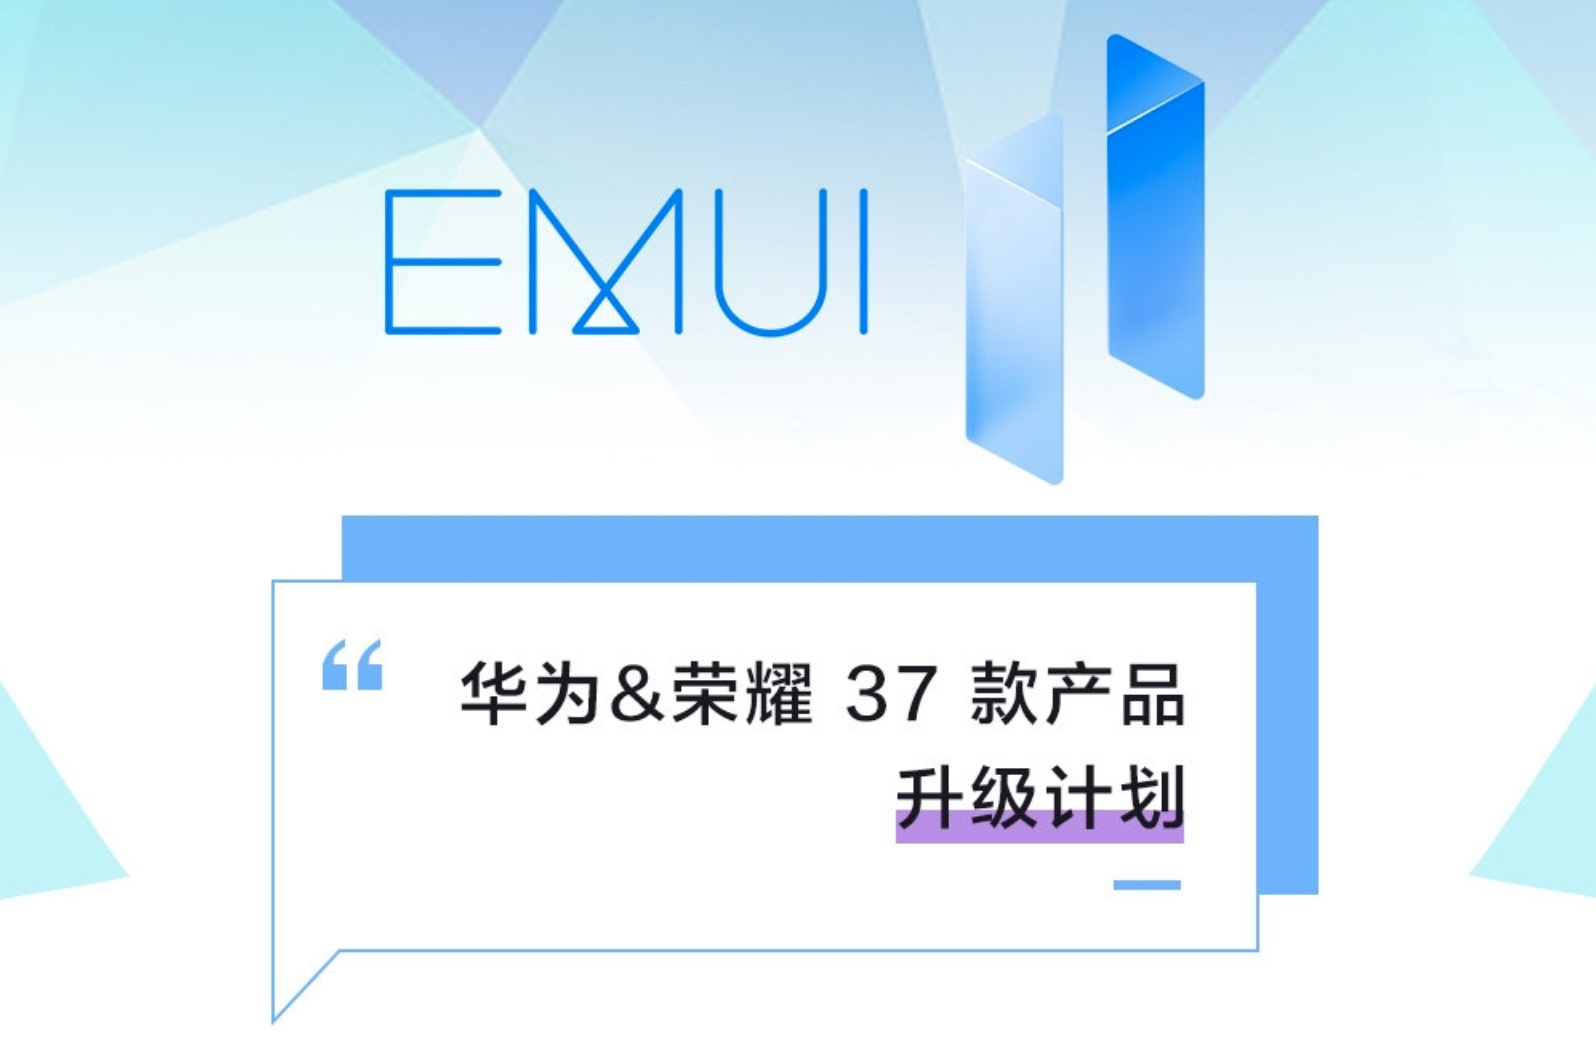 Huawei announces EMUI 11 upgrade plans, covering 37 devices-cnTechPost